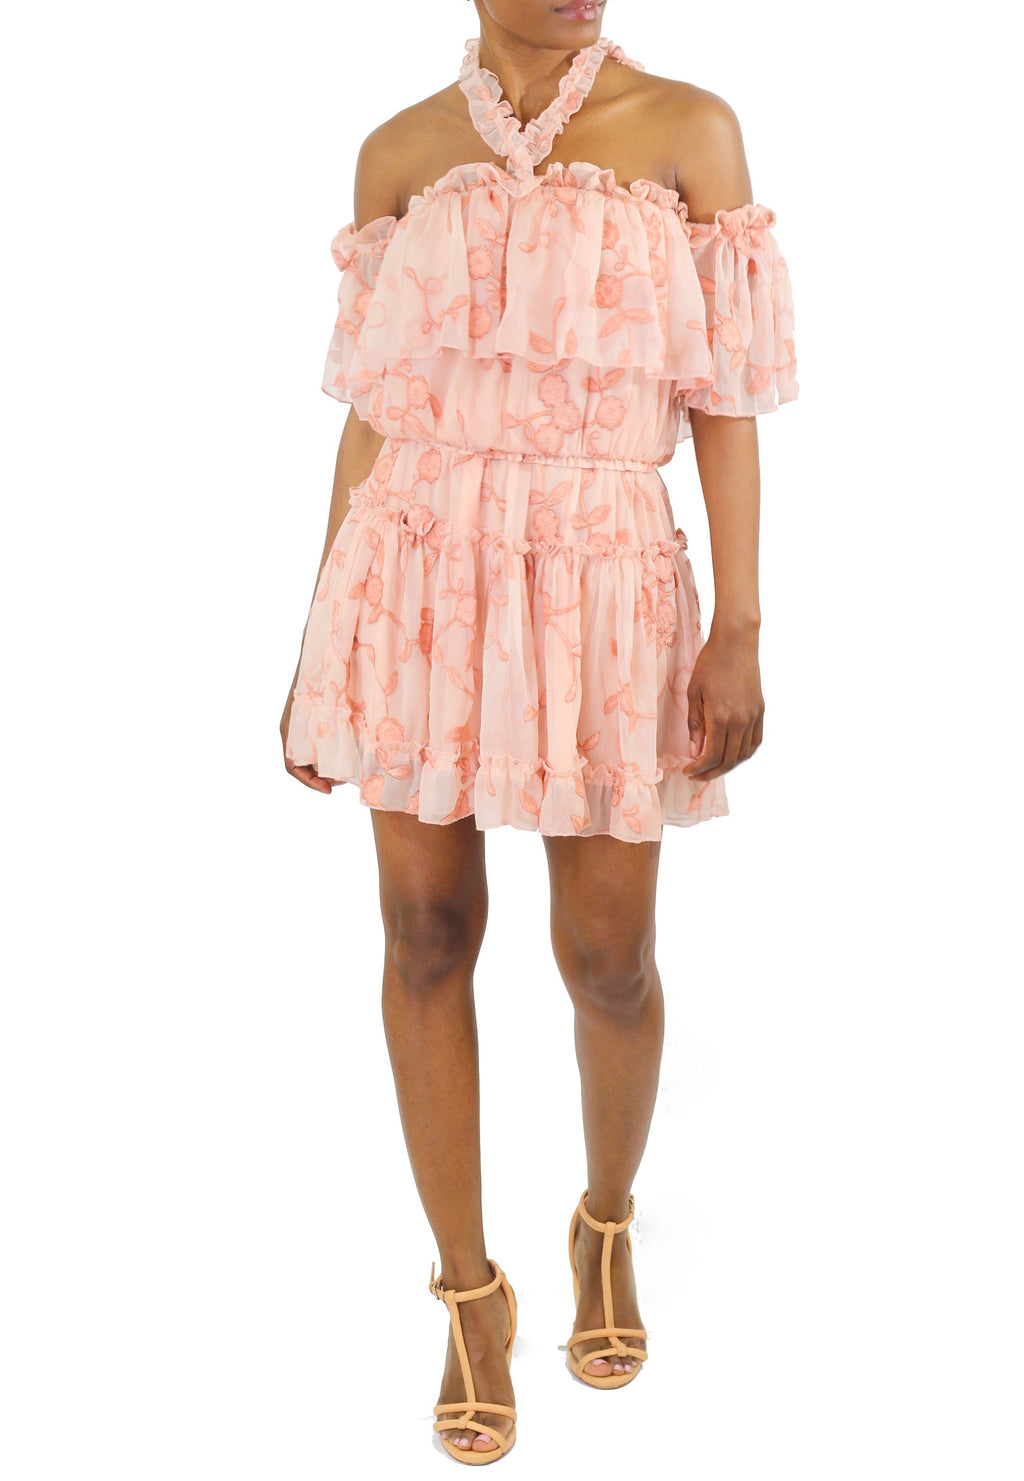 Blush Halter Dress - Coveted Style